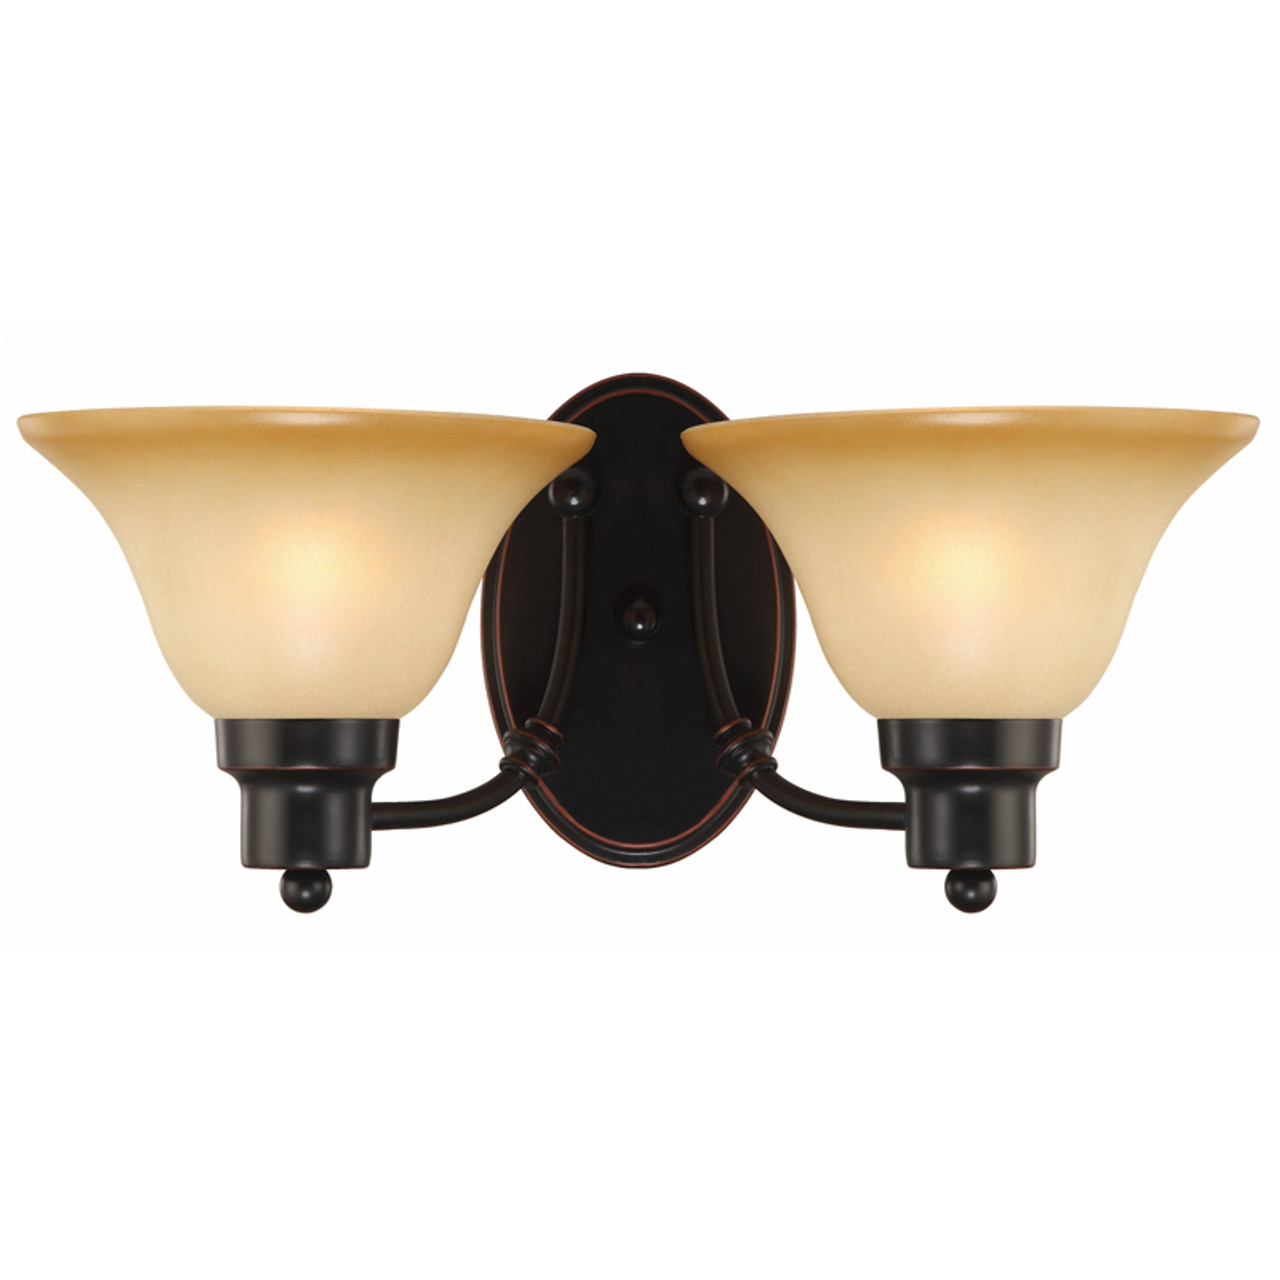 Oil Rubbed Bronze 2 Light Wall Sconce Bathroom Fixture 16 7222